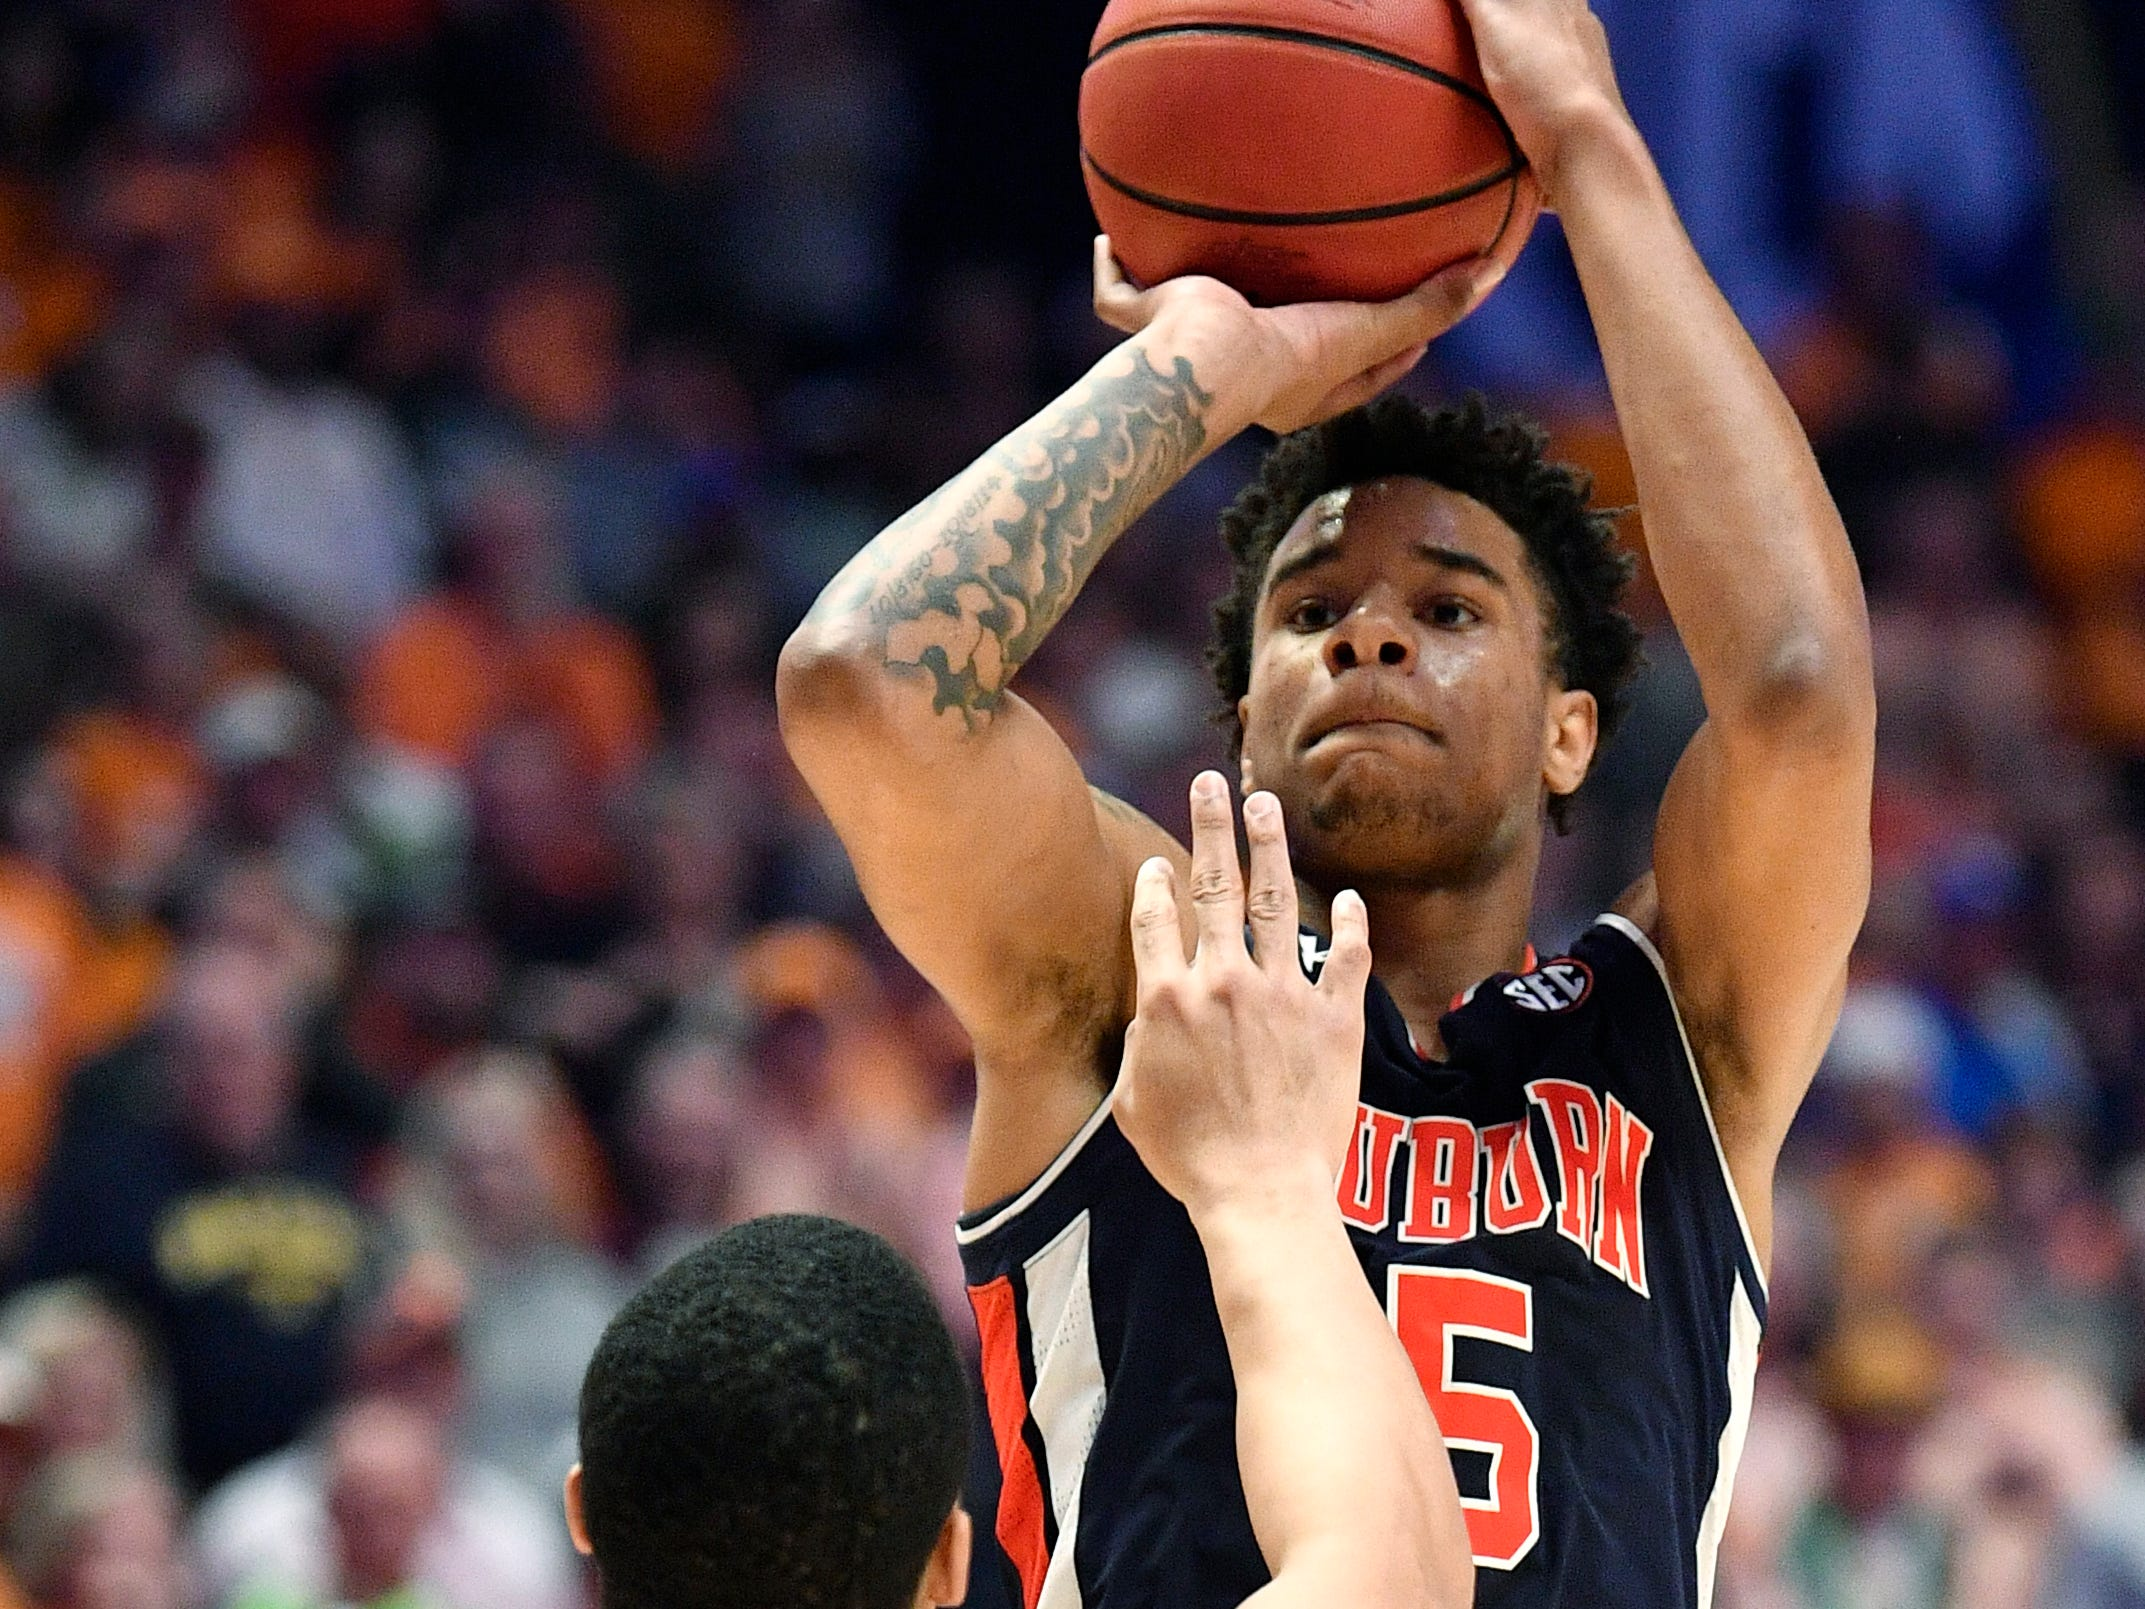 Auburn forward Chuma Okeke (5) gets a three over Tennessee forward Grant Williams (2) during the second half of the SEC Men's Basketball Tournament championship game at Bridgestone Arena in Nashville, Tenn., Sunday, March 17, 2019.